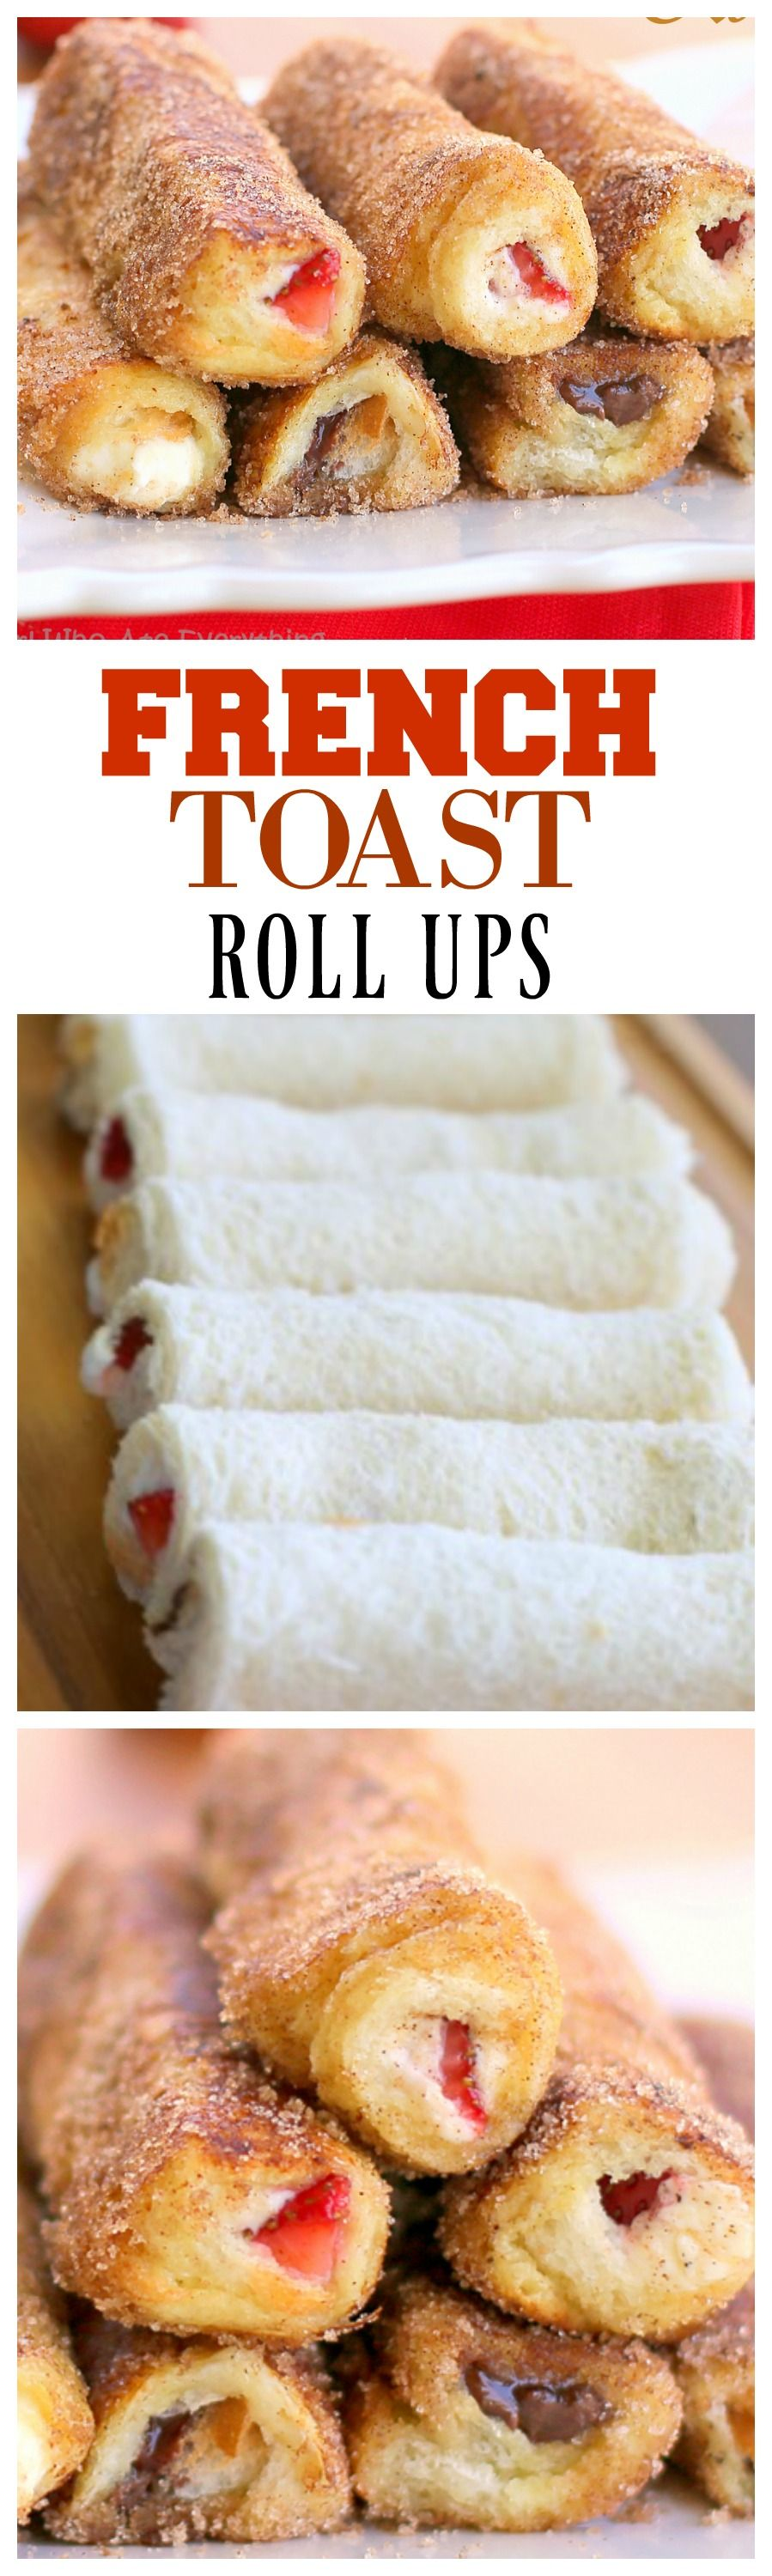 French Toast Roll Ups - make them with whatever filling you want ...